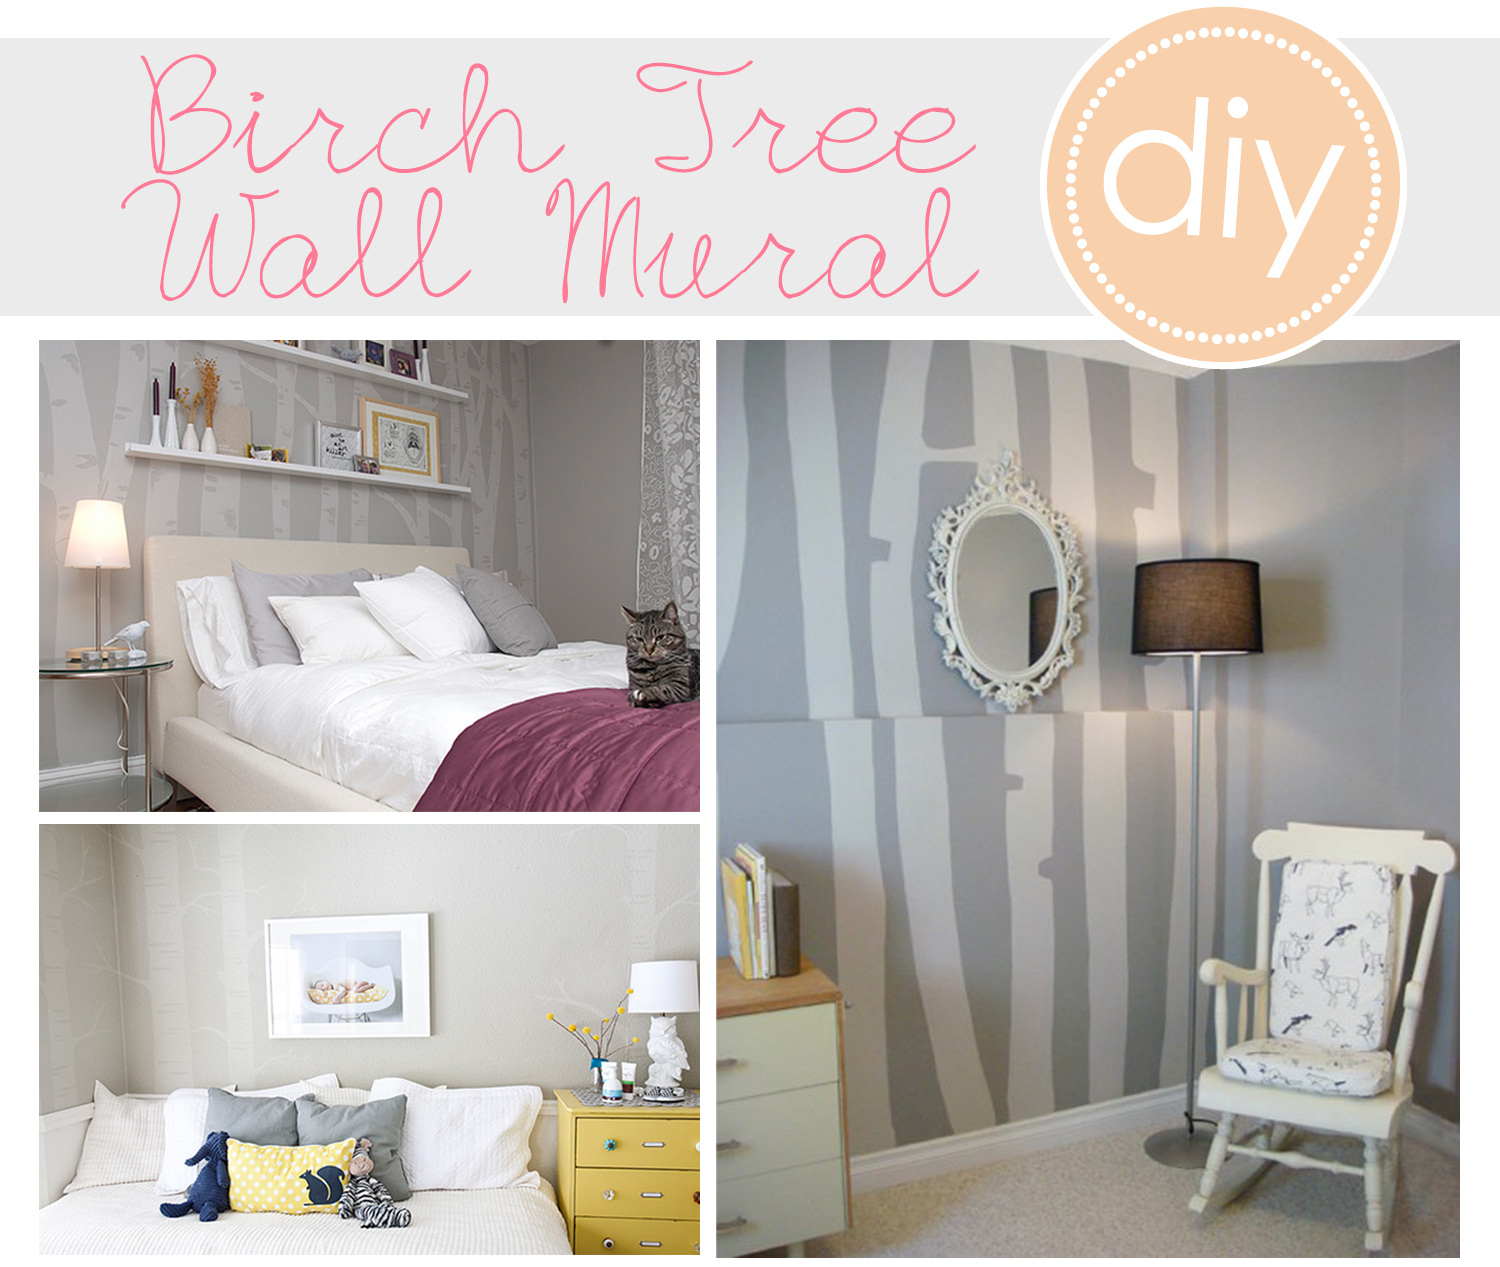 Birch tree mural diy crafts for Diy wall photo mural